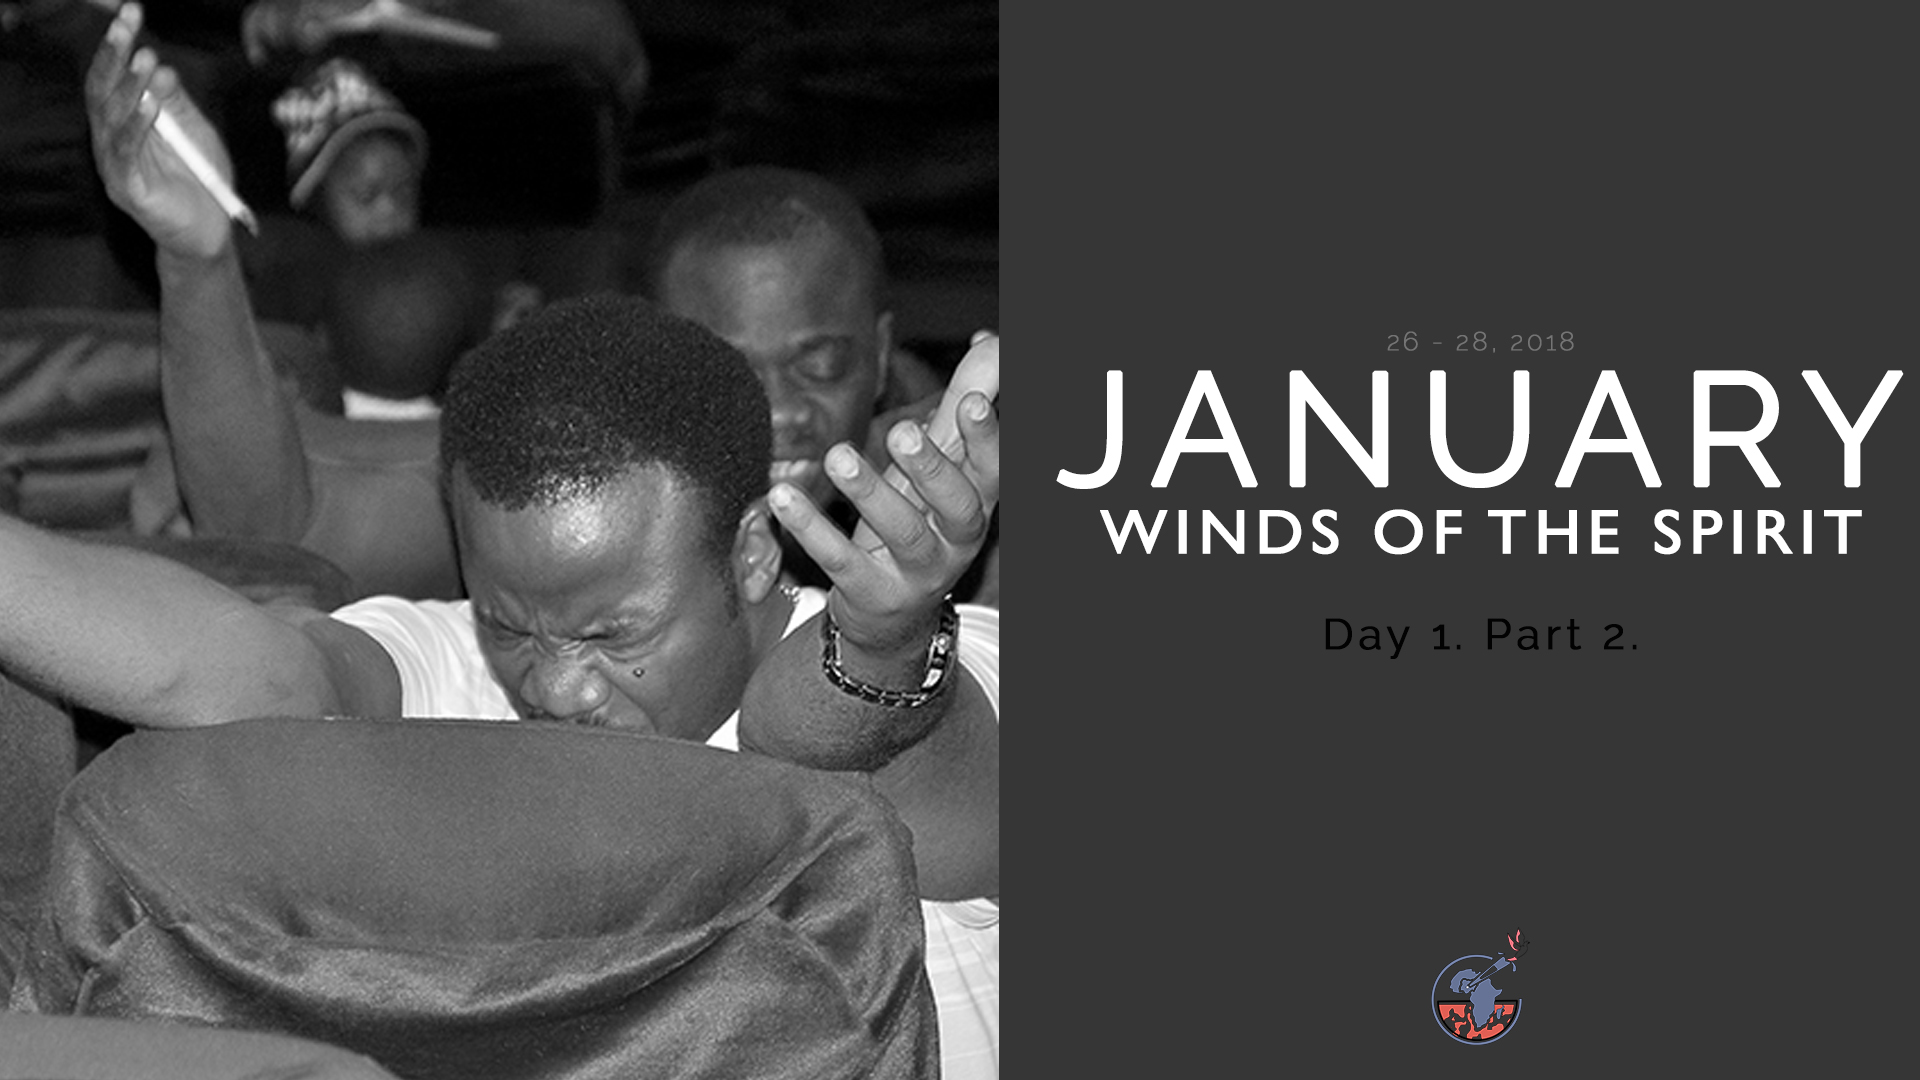 January 2018 Winds of the Spirit. Day 1. Part 2.